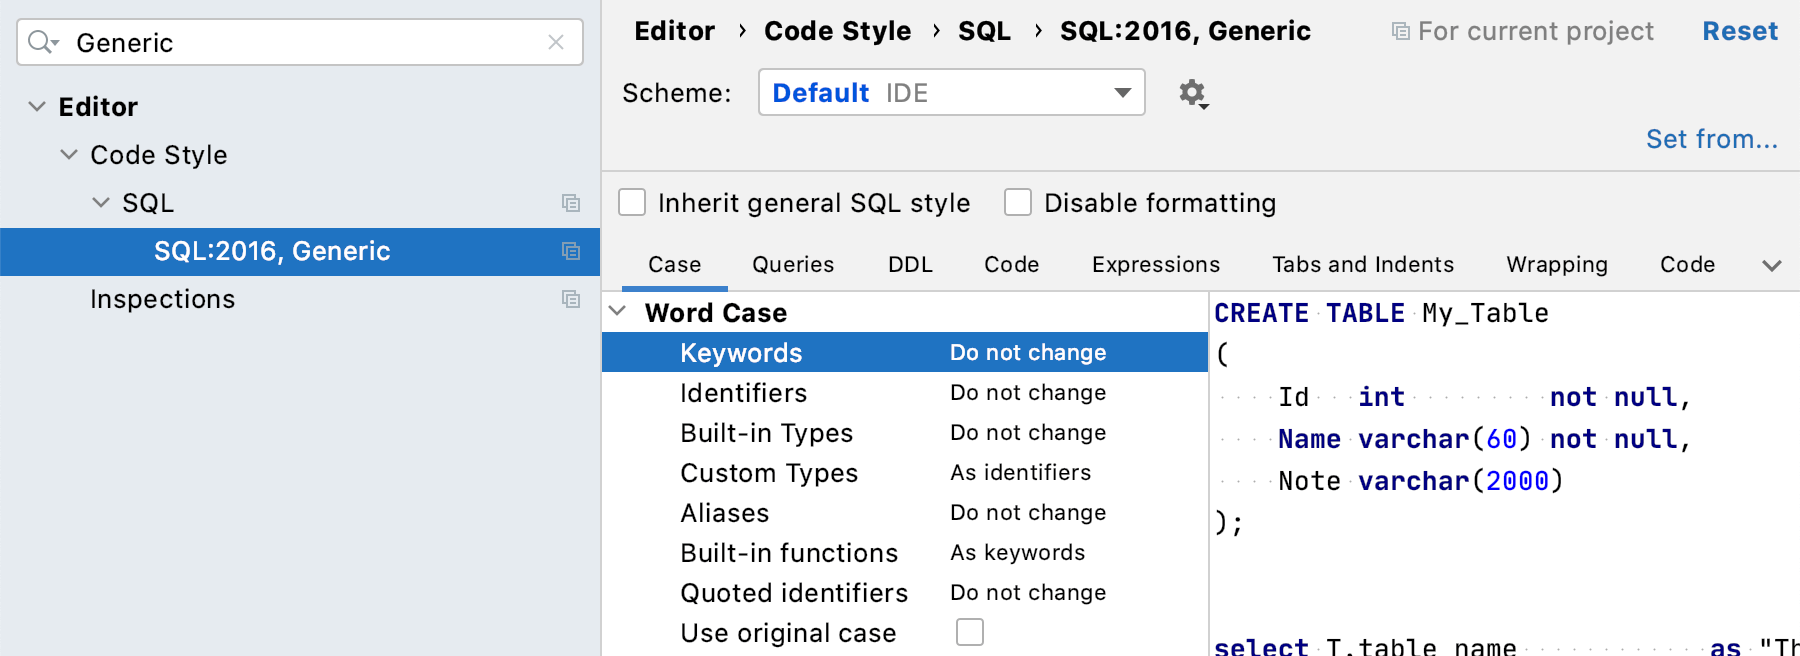 code style to the Generic